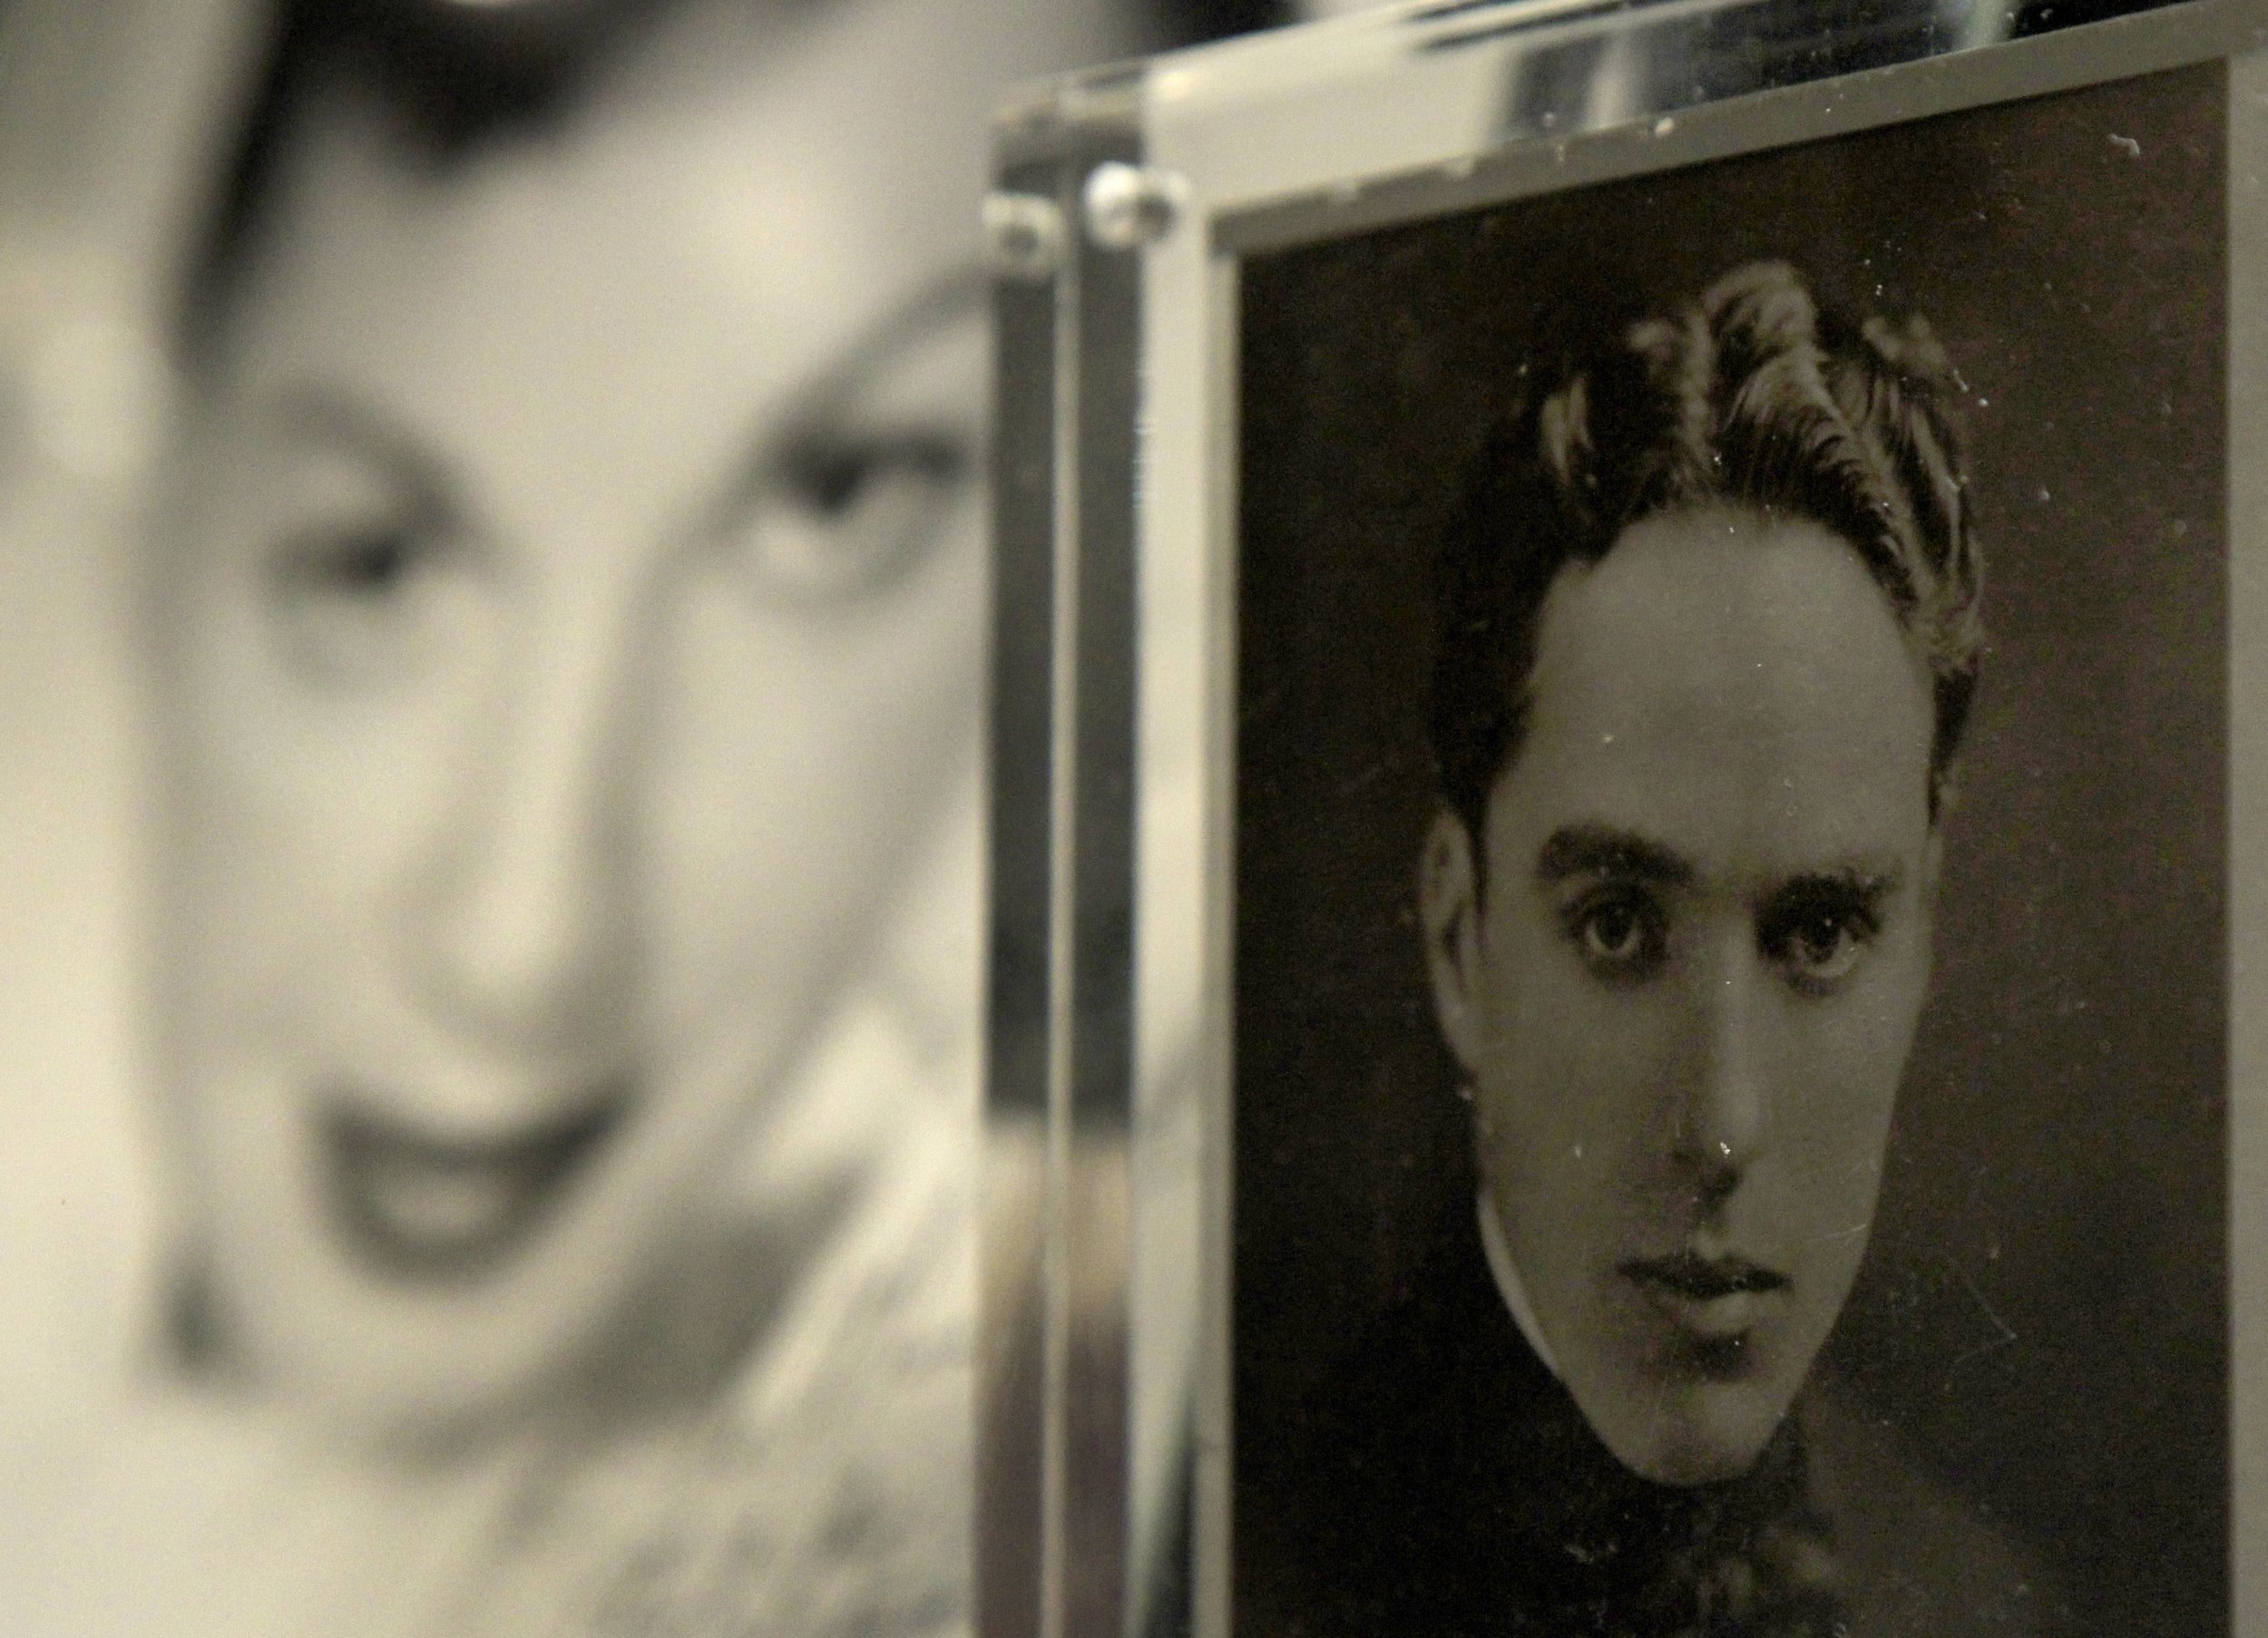 Charlie Chaplin: On His 116th birthday, A look at His Weirder Side.